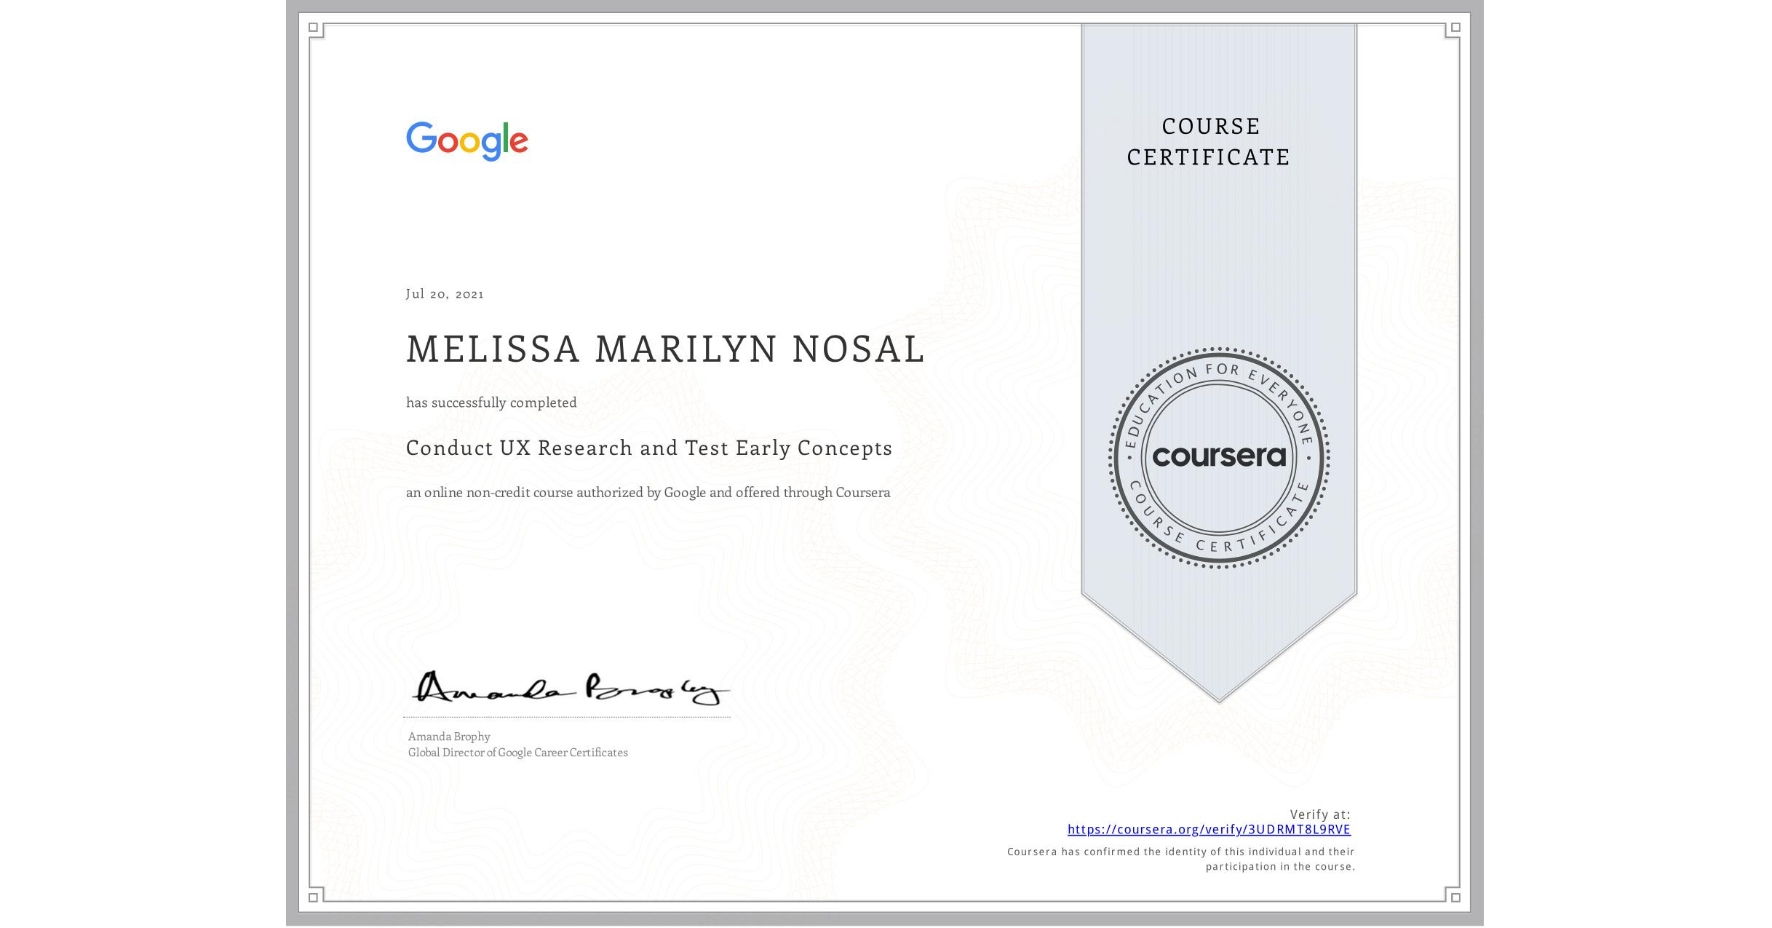 View certificate for Melissa Nosal, Conduct UX Research and Test Early Concepts, an online non-credit course authorized by Google and offered through Coursera